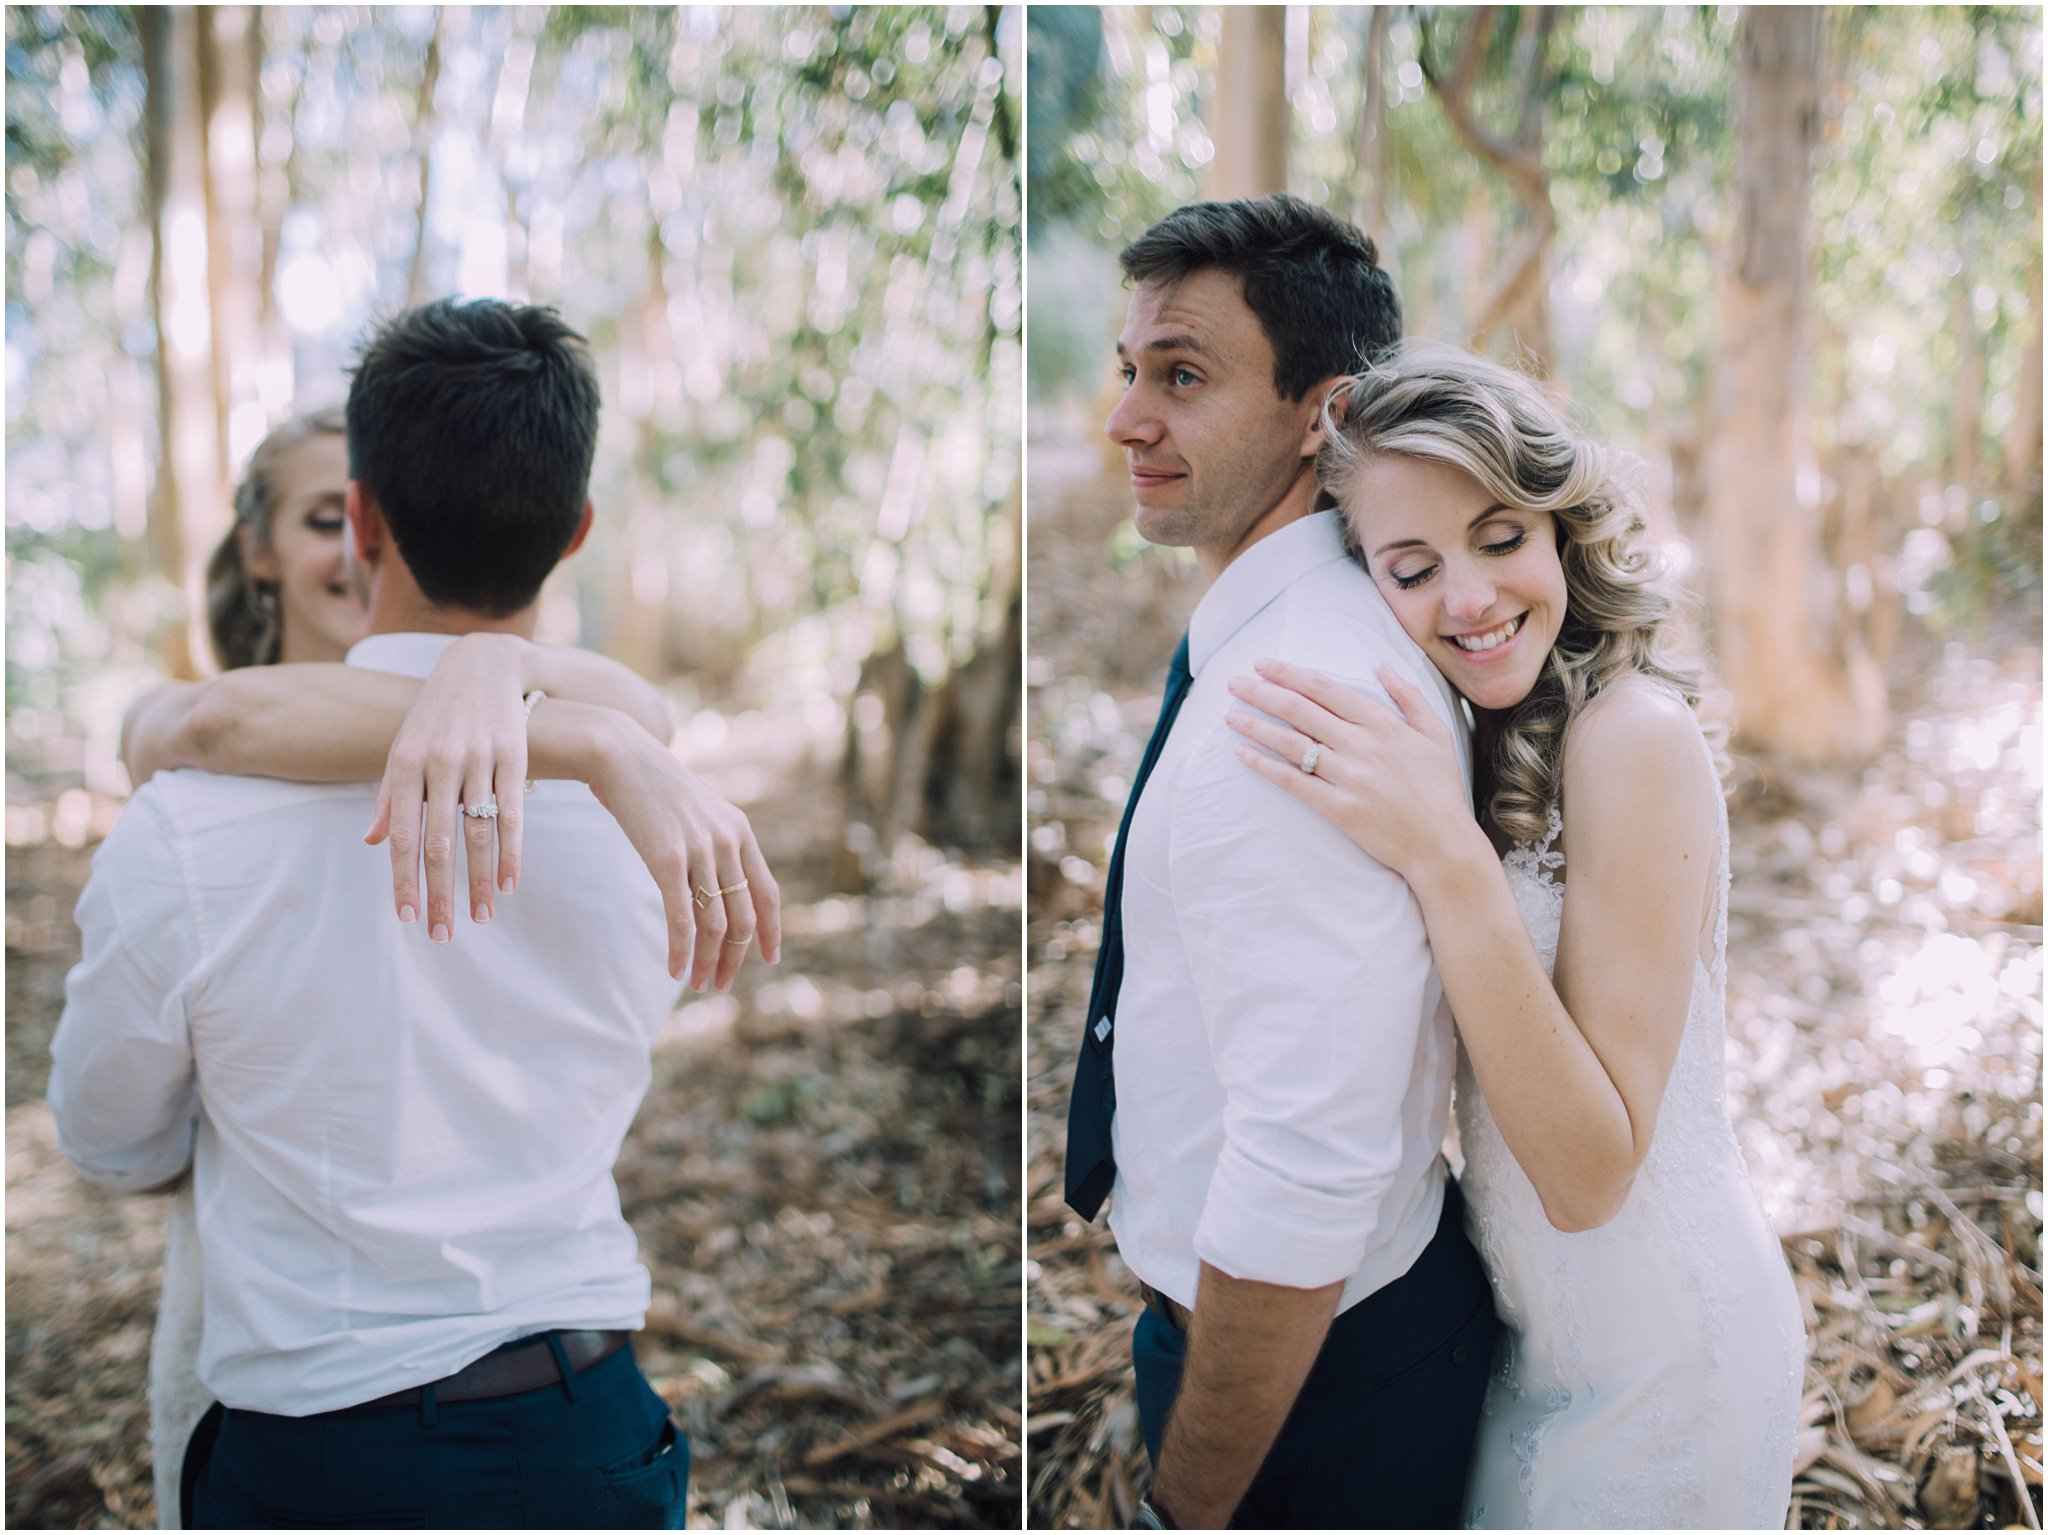 Ronel Kruger Cape Town Wedding and Lifestyle Photographer_2876.jpg